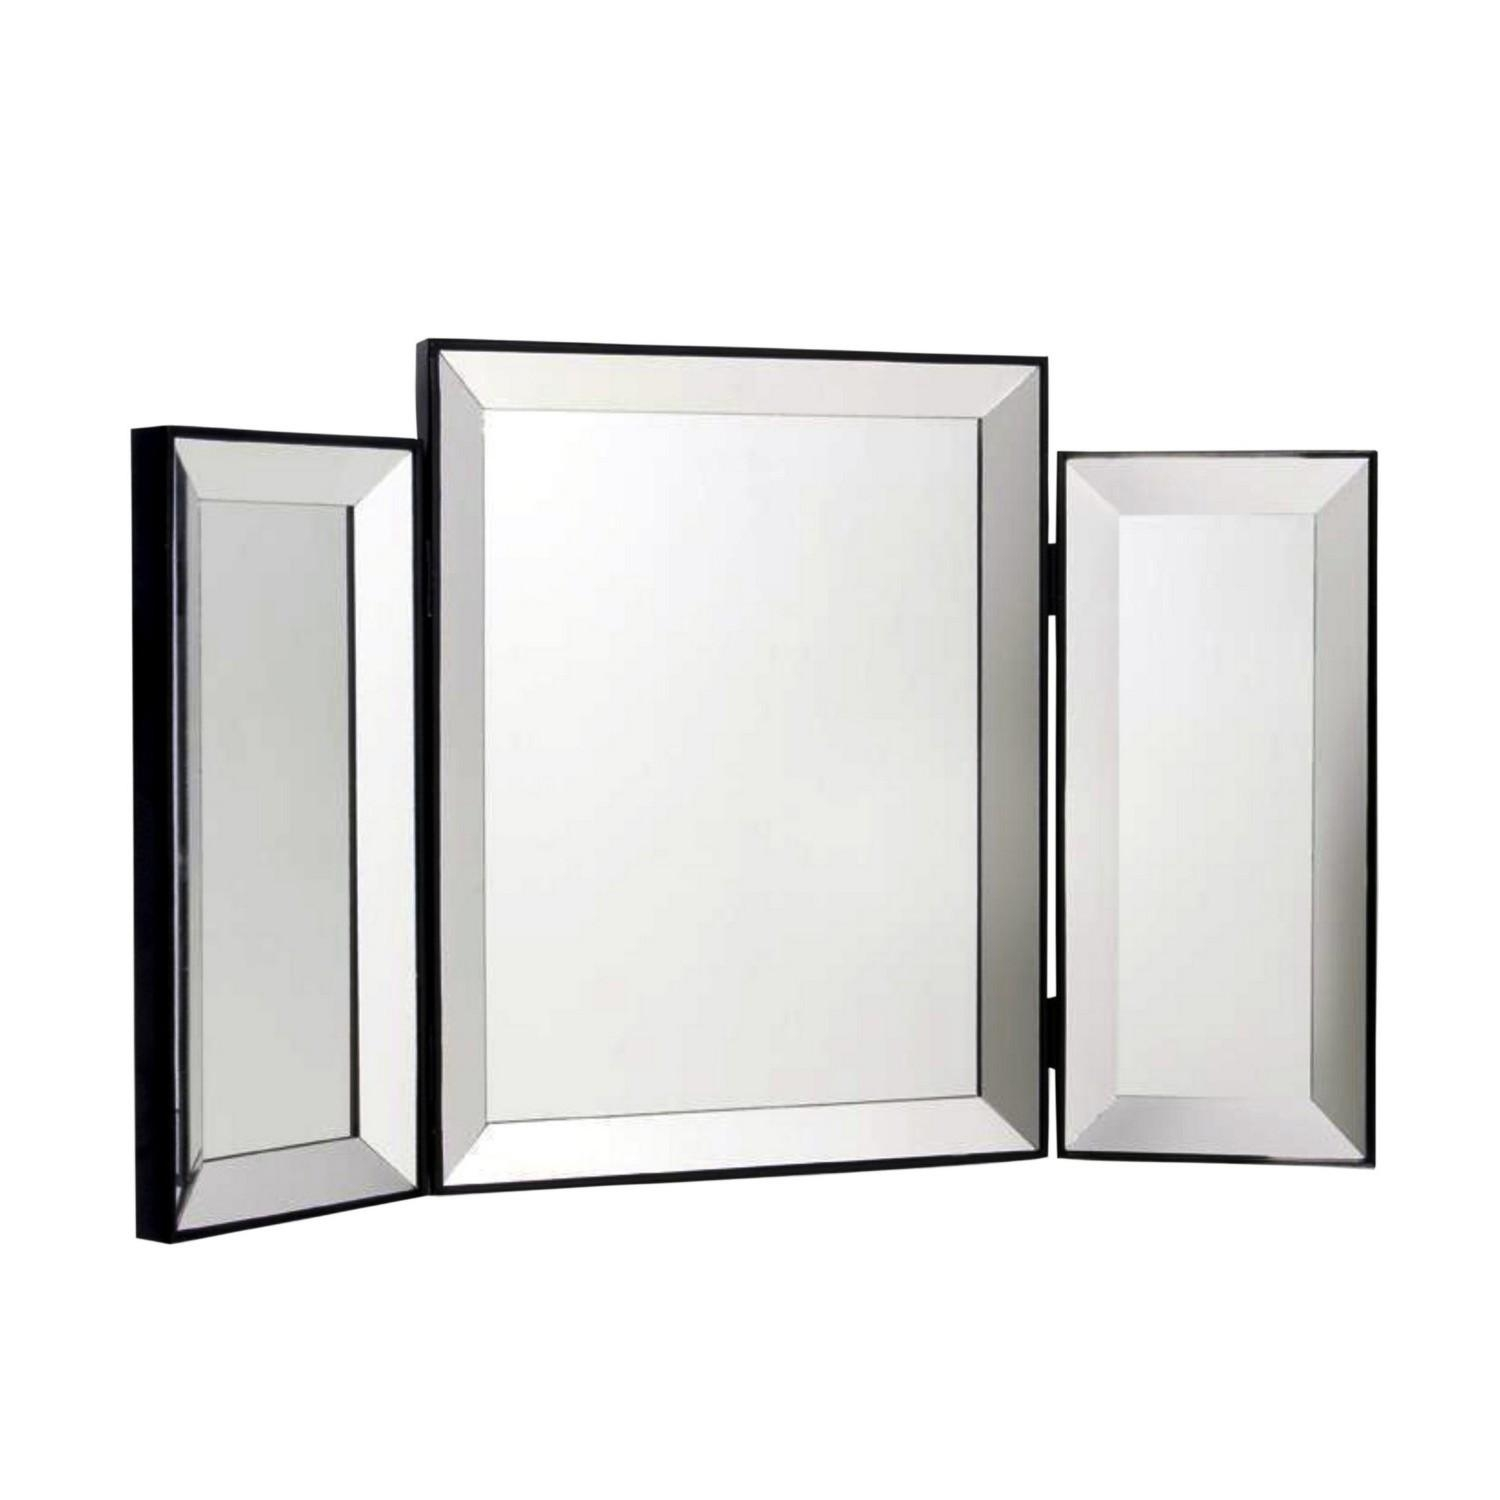 White Dressing Table Mirror With Regard To Dressing Table Mirrors (Image 19 of 20)